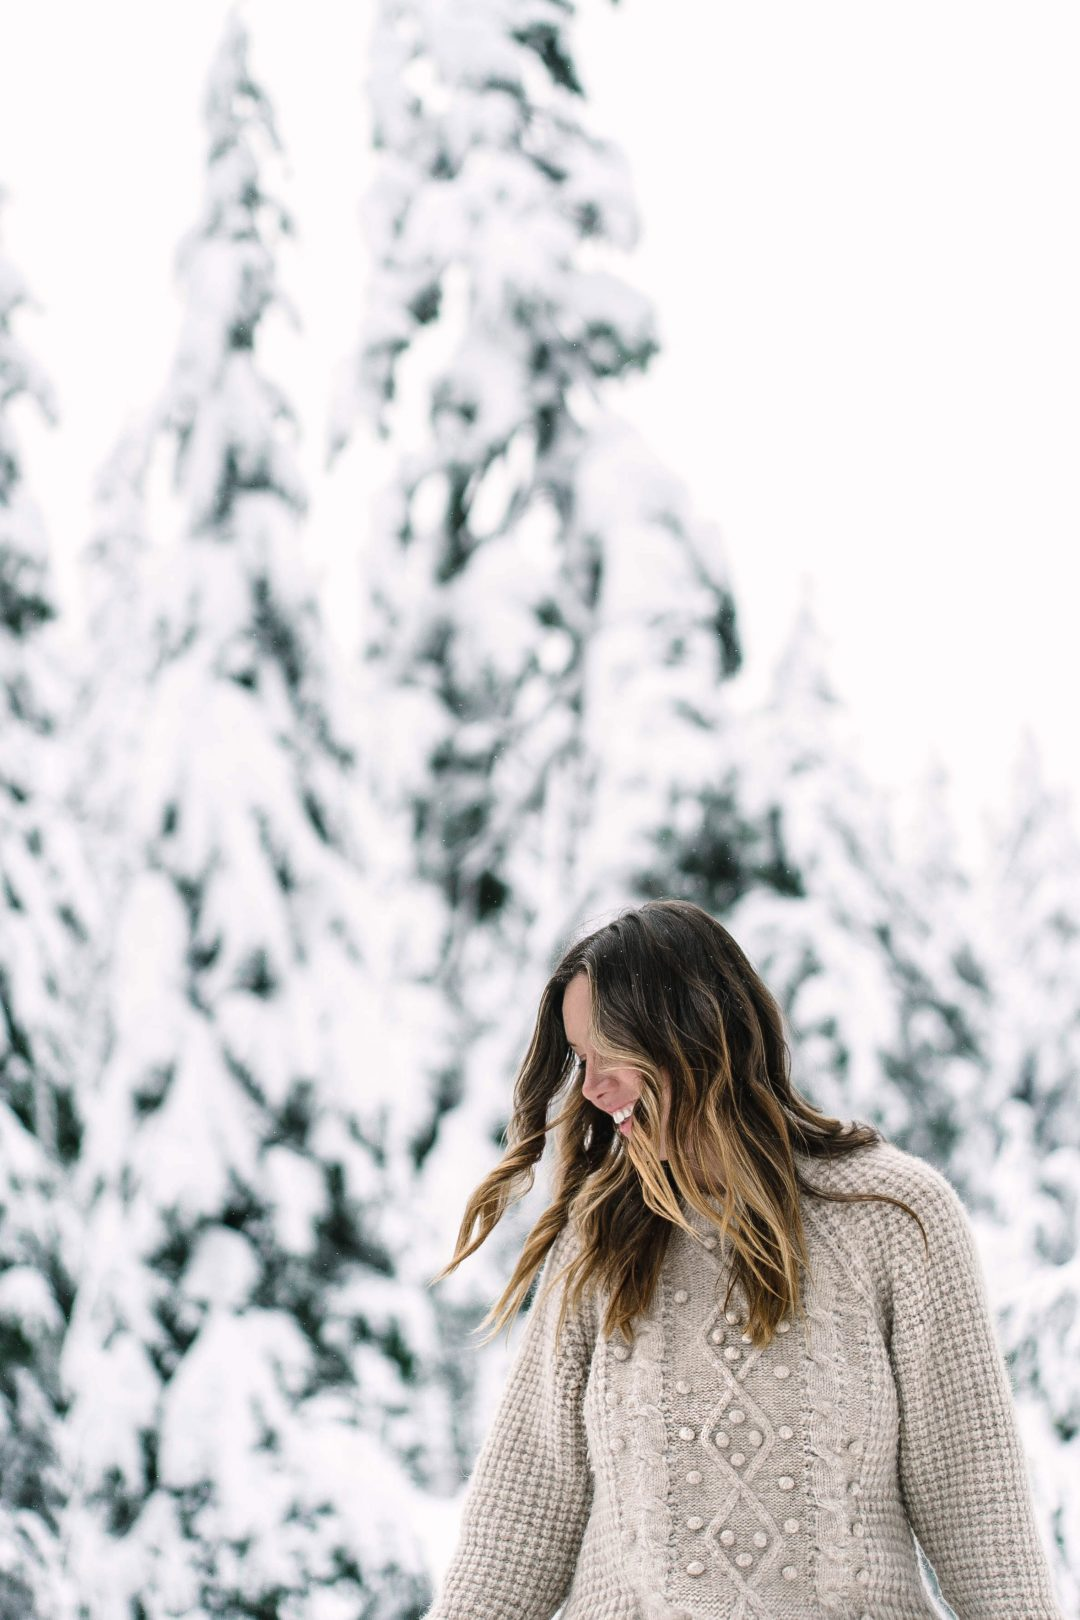 Winter outfit inspiration in aritzia sweater by To Vogue or Bust